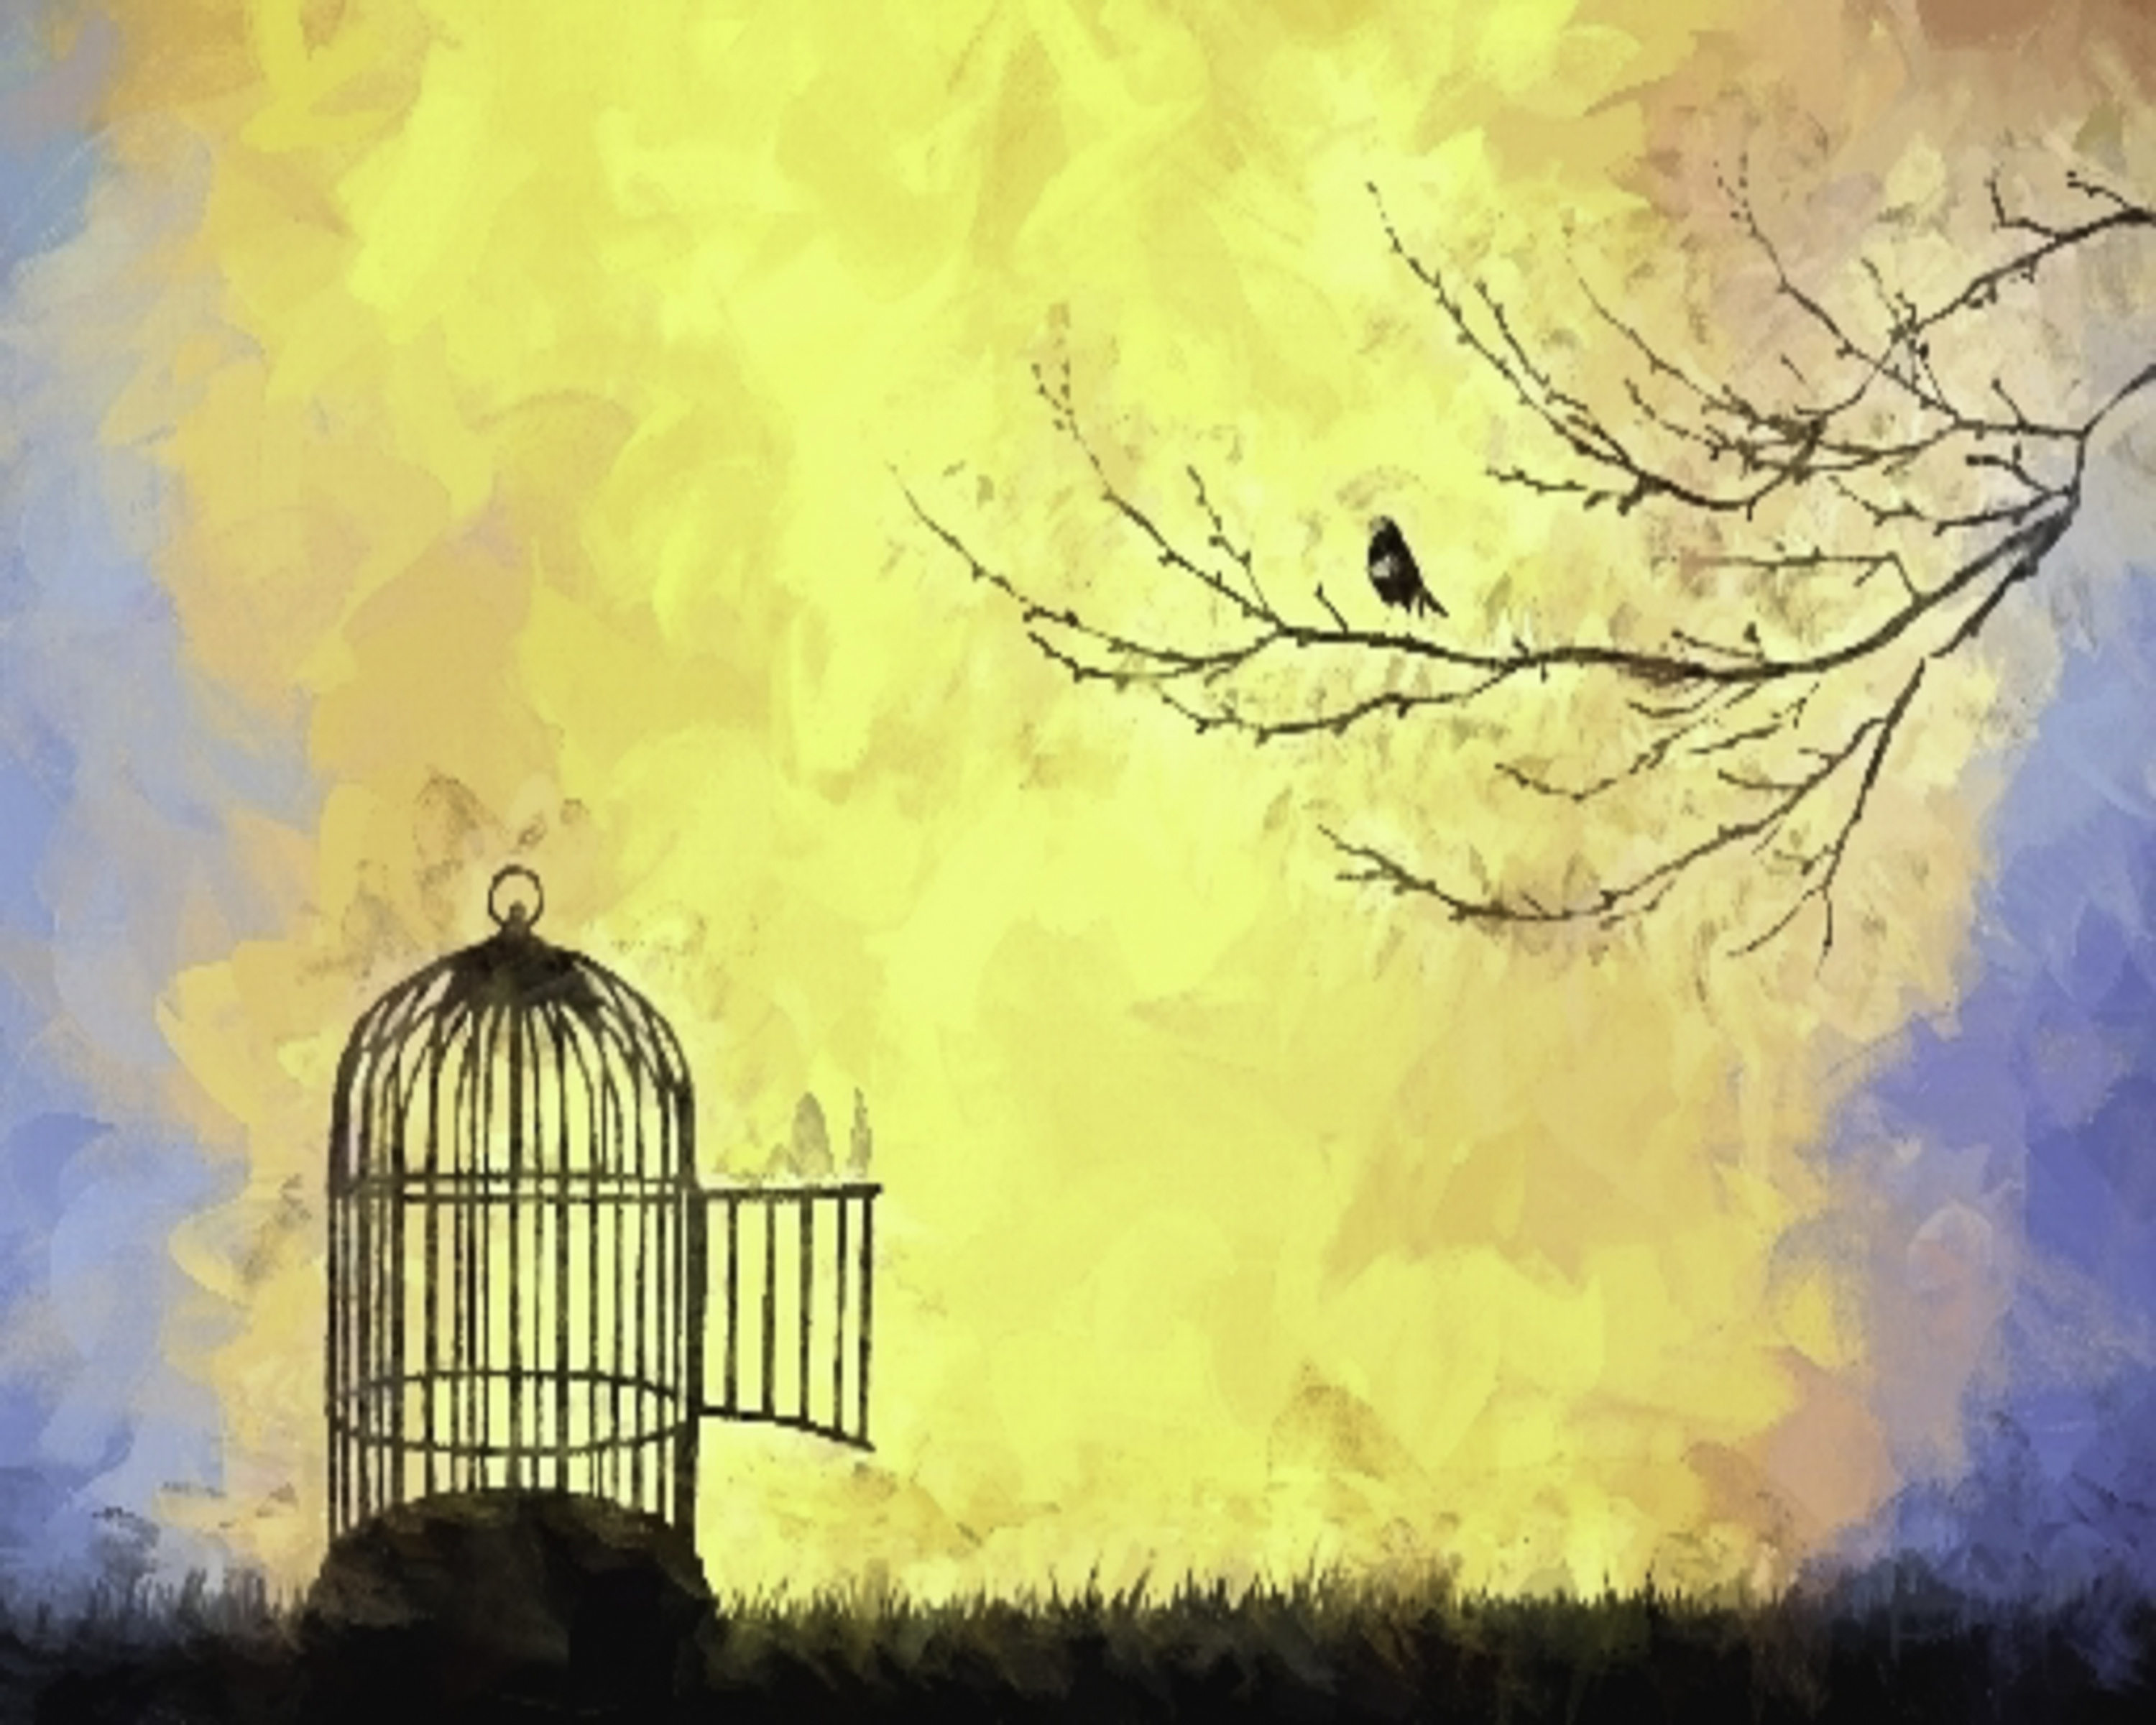 Free-Bird out of cage